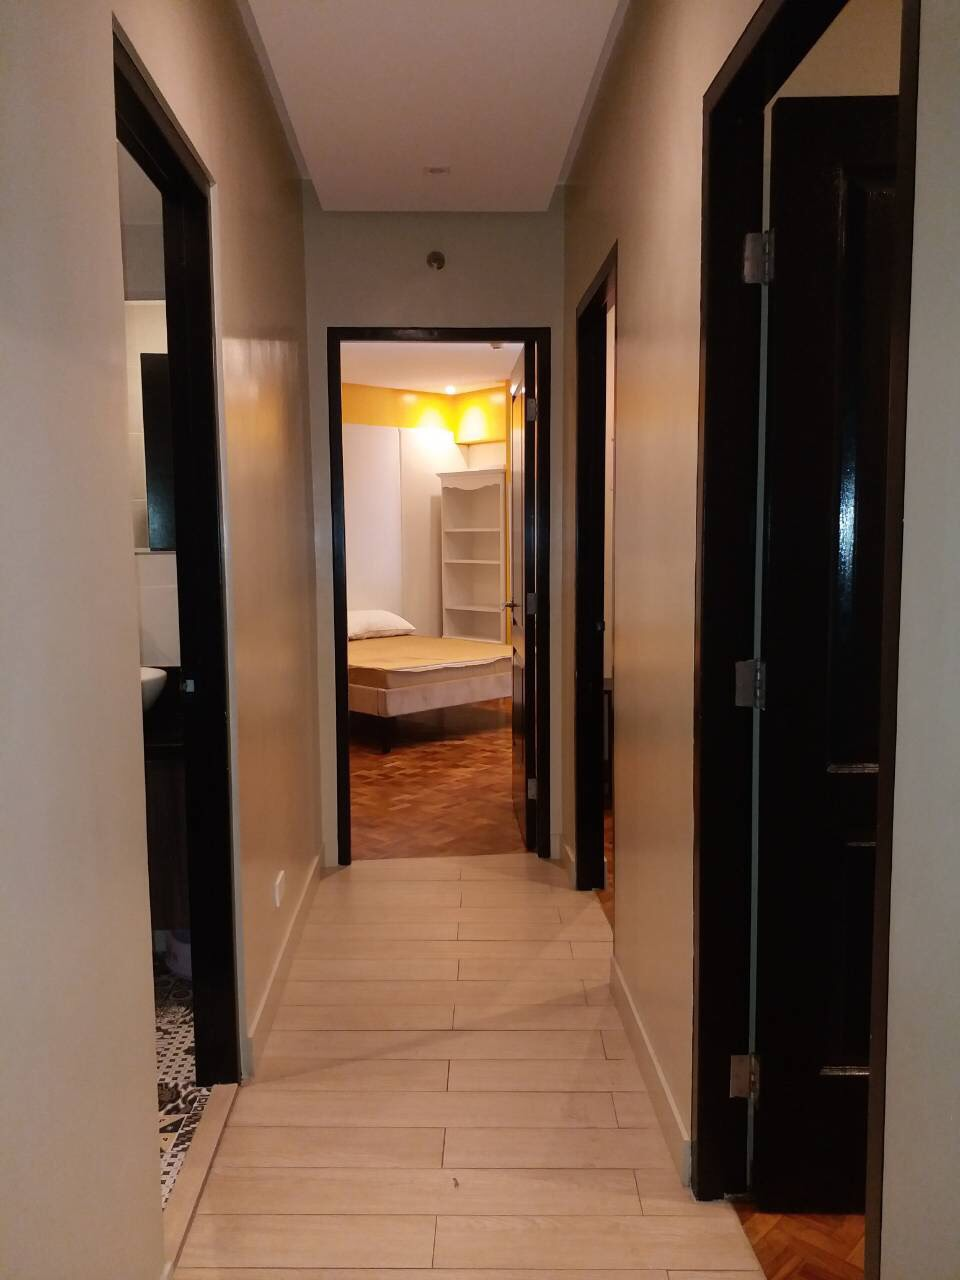 For Rent, Almond, Two Serendra, BGC, Taguig City Hall